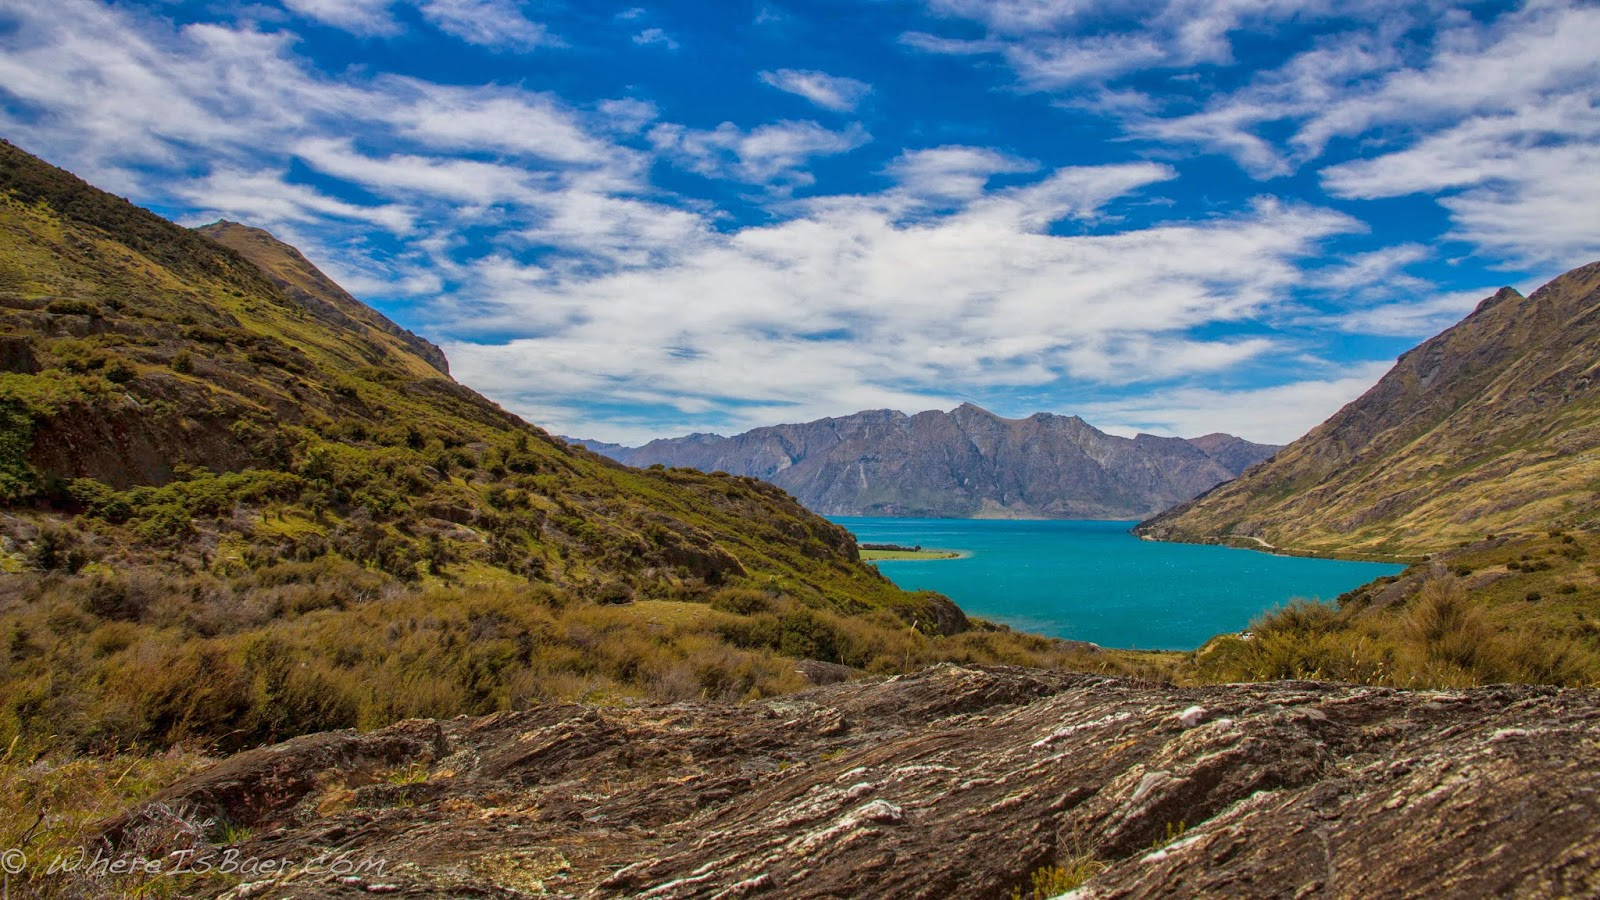 Looking back at Lake Hawea, New Zealand, Chris Baer